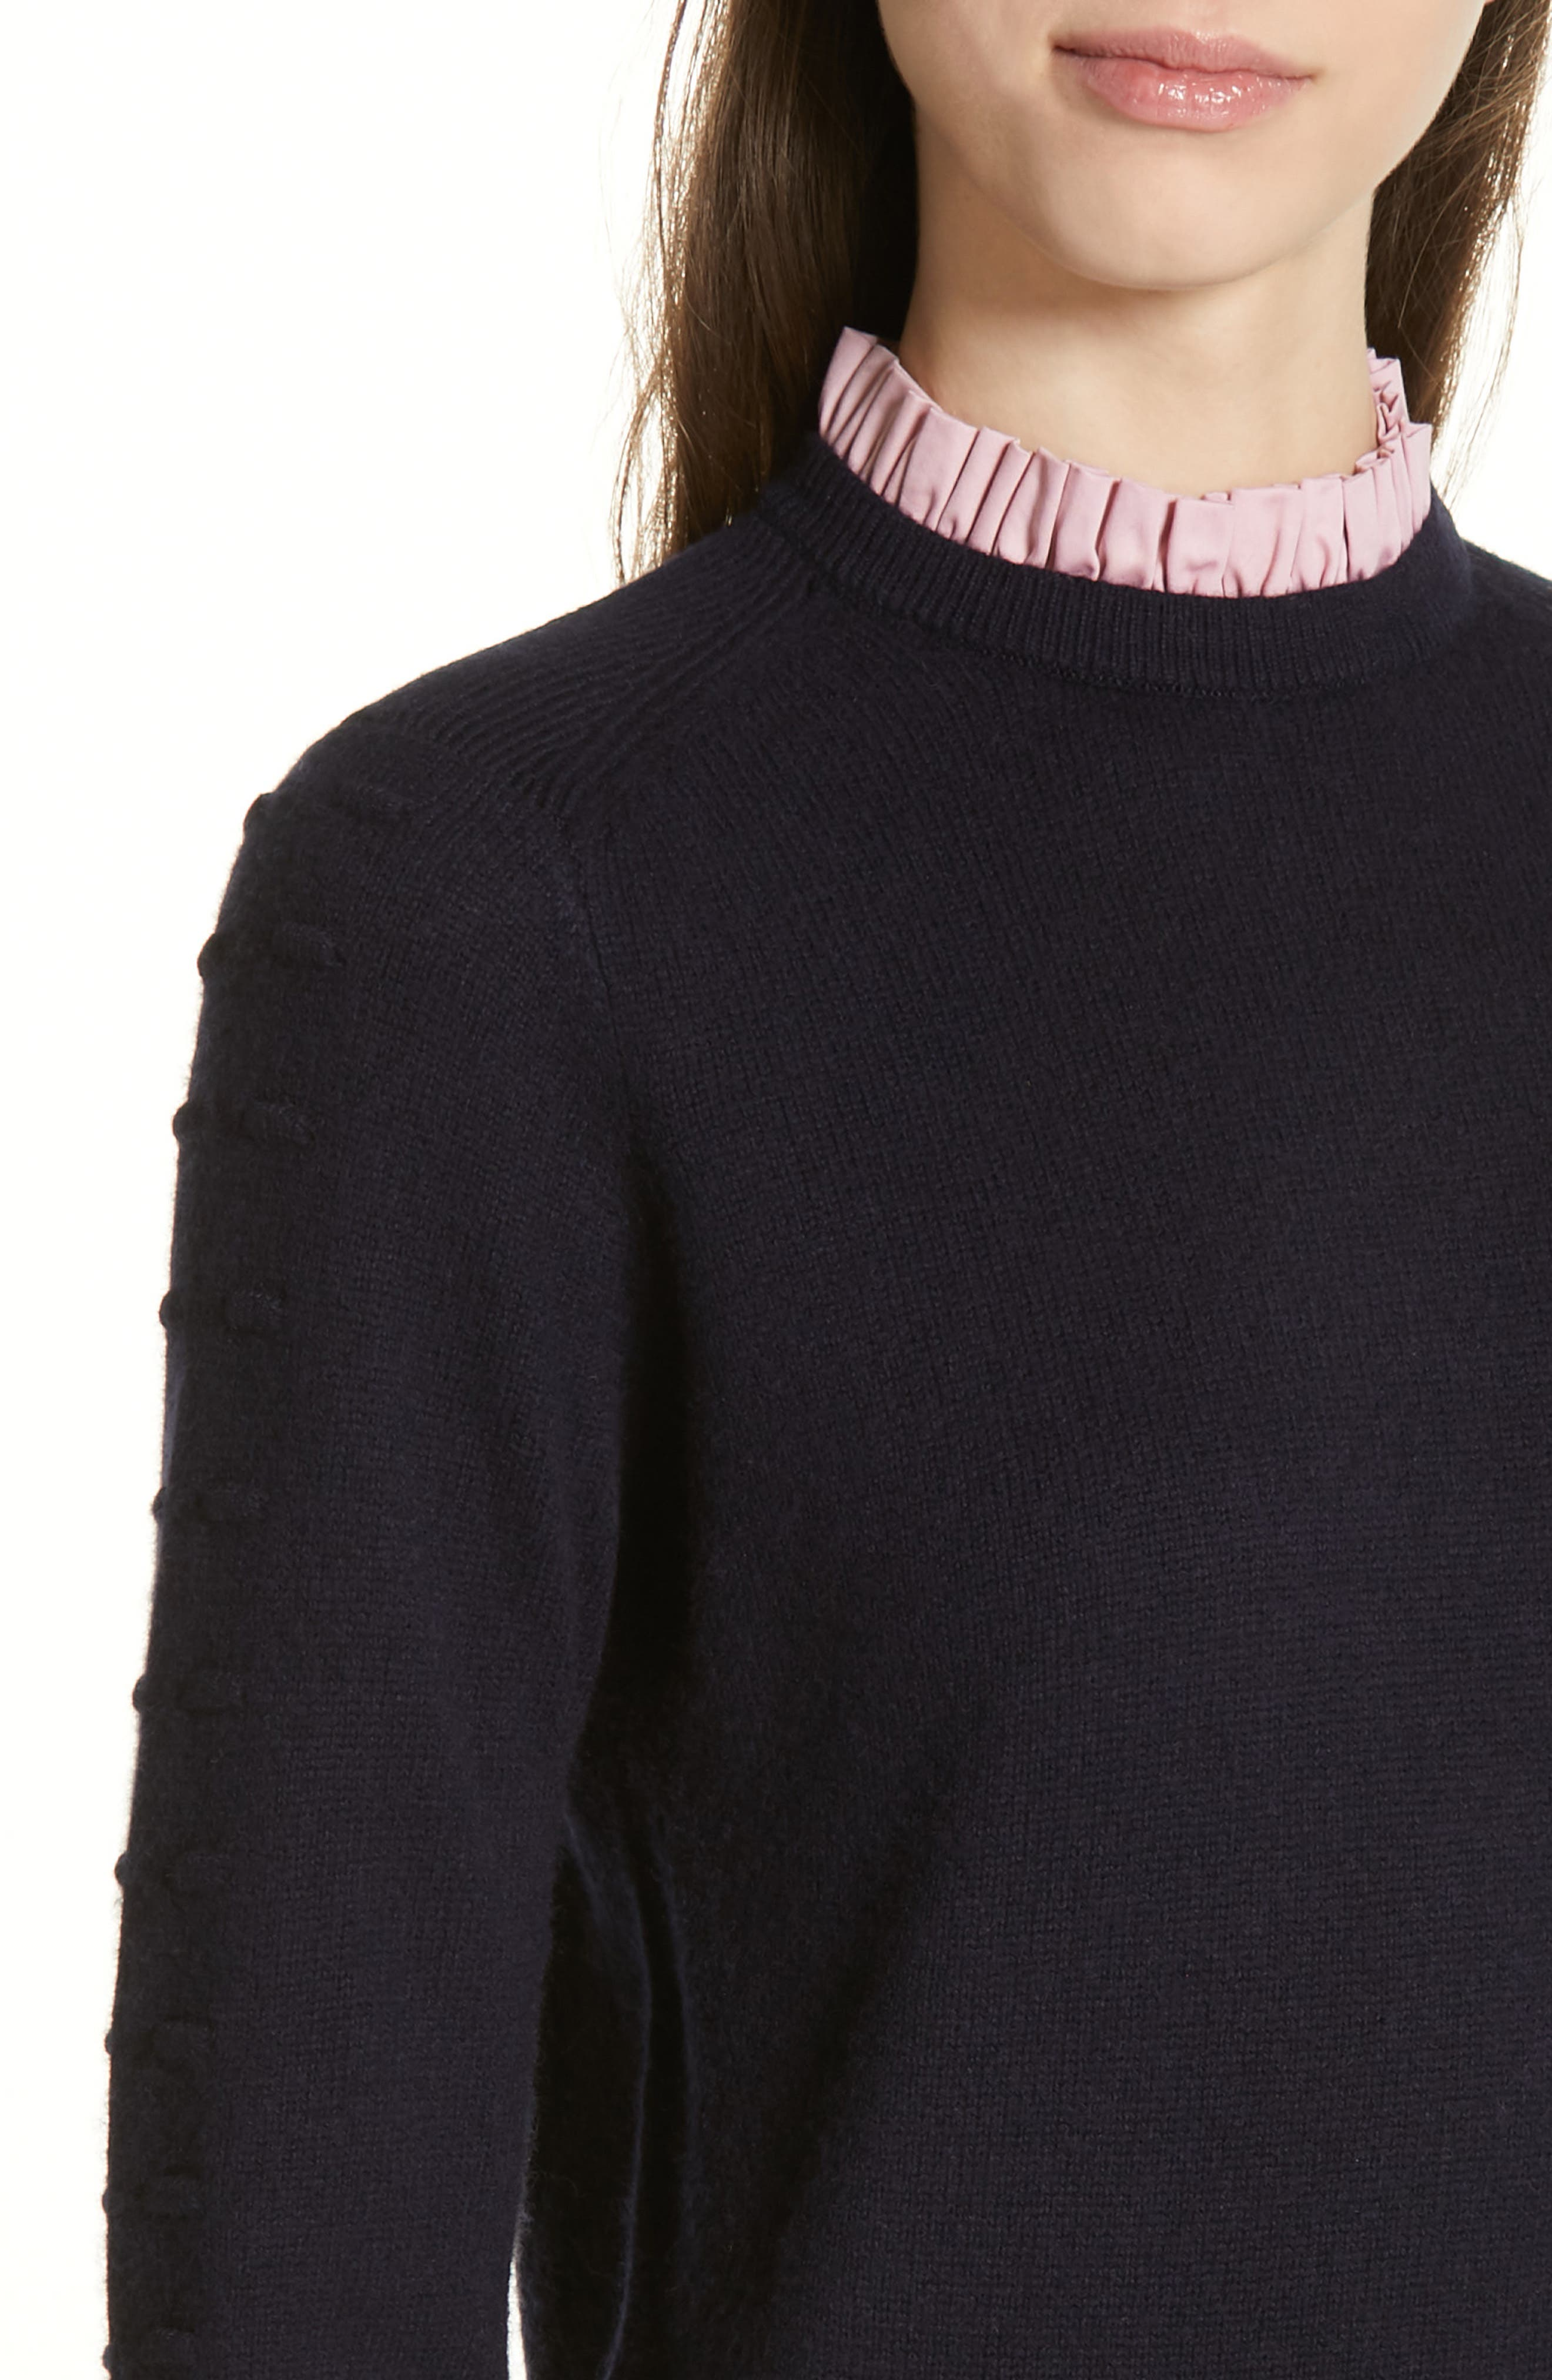 TED BAKER LONDON, Mock Two-Piece Sweater, Alternate thumbnail 4, color, NAVY